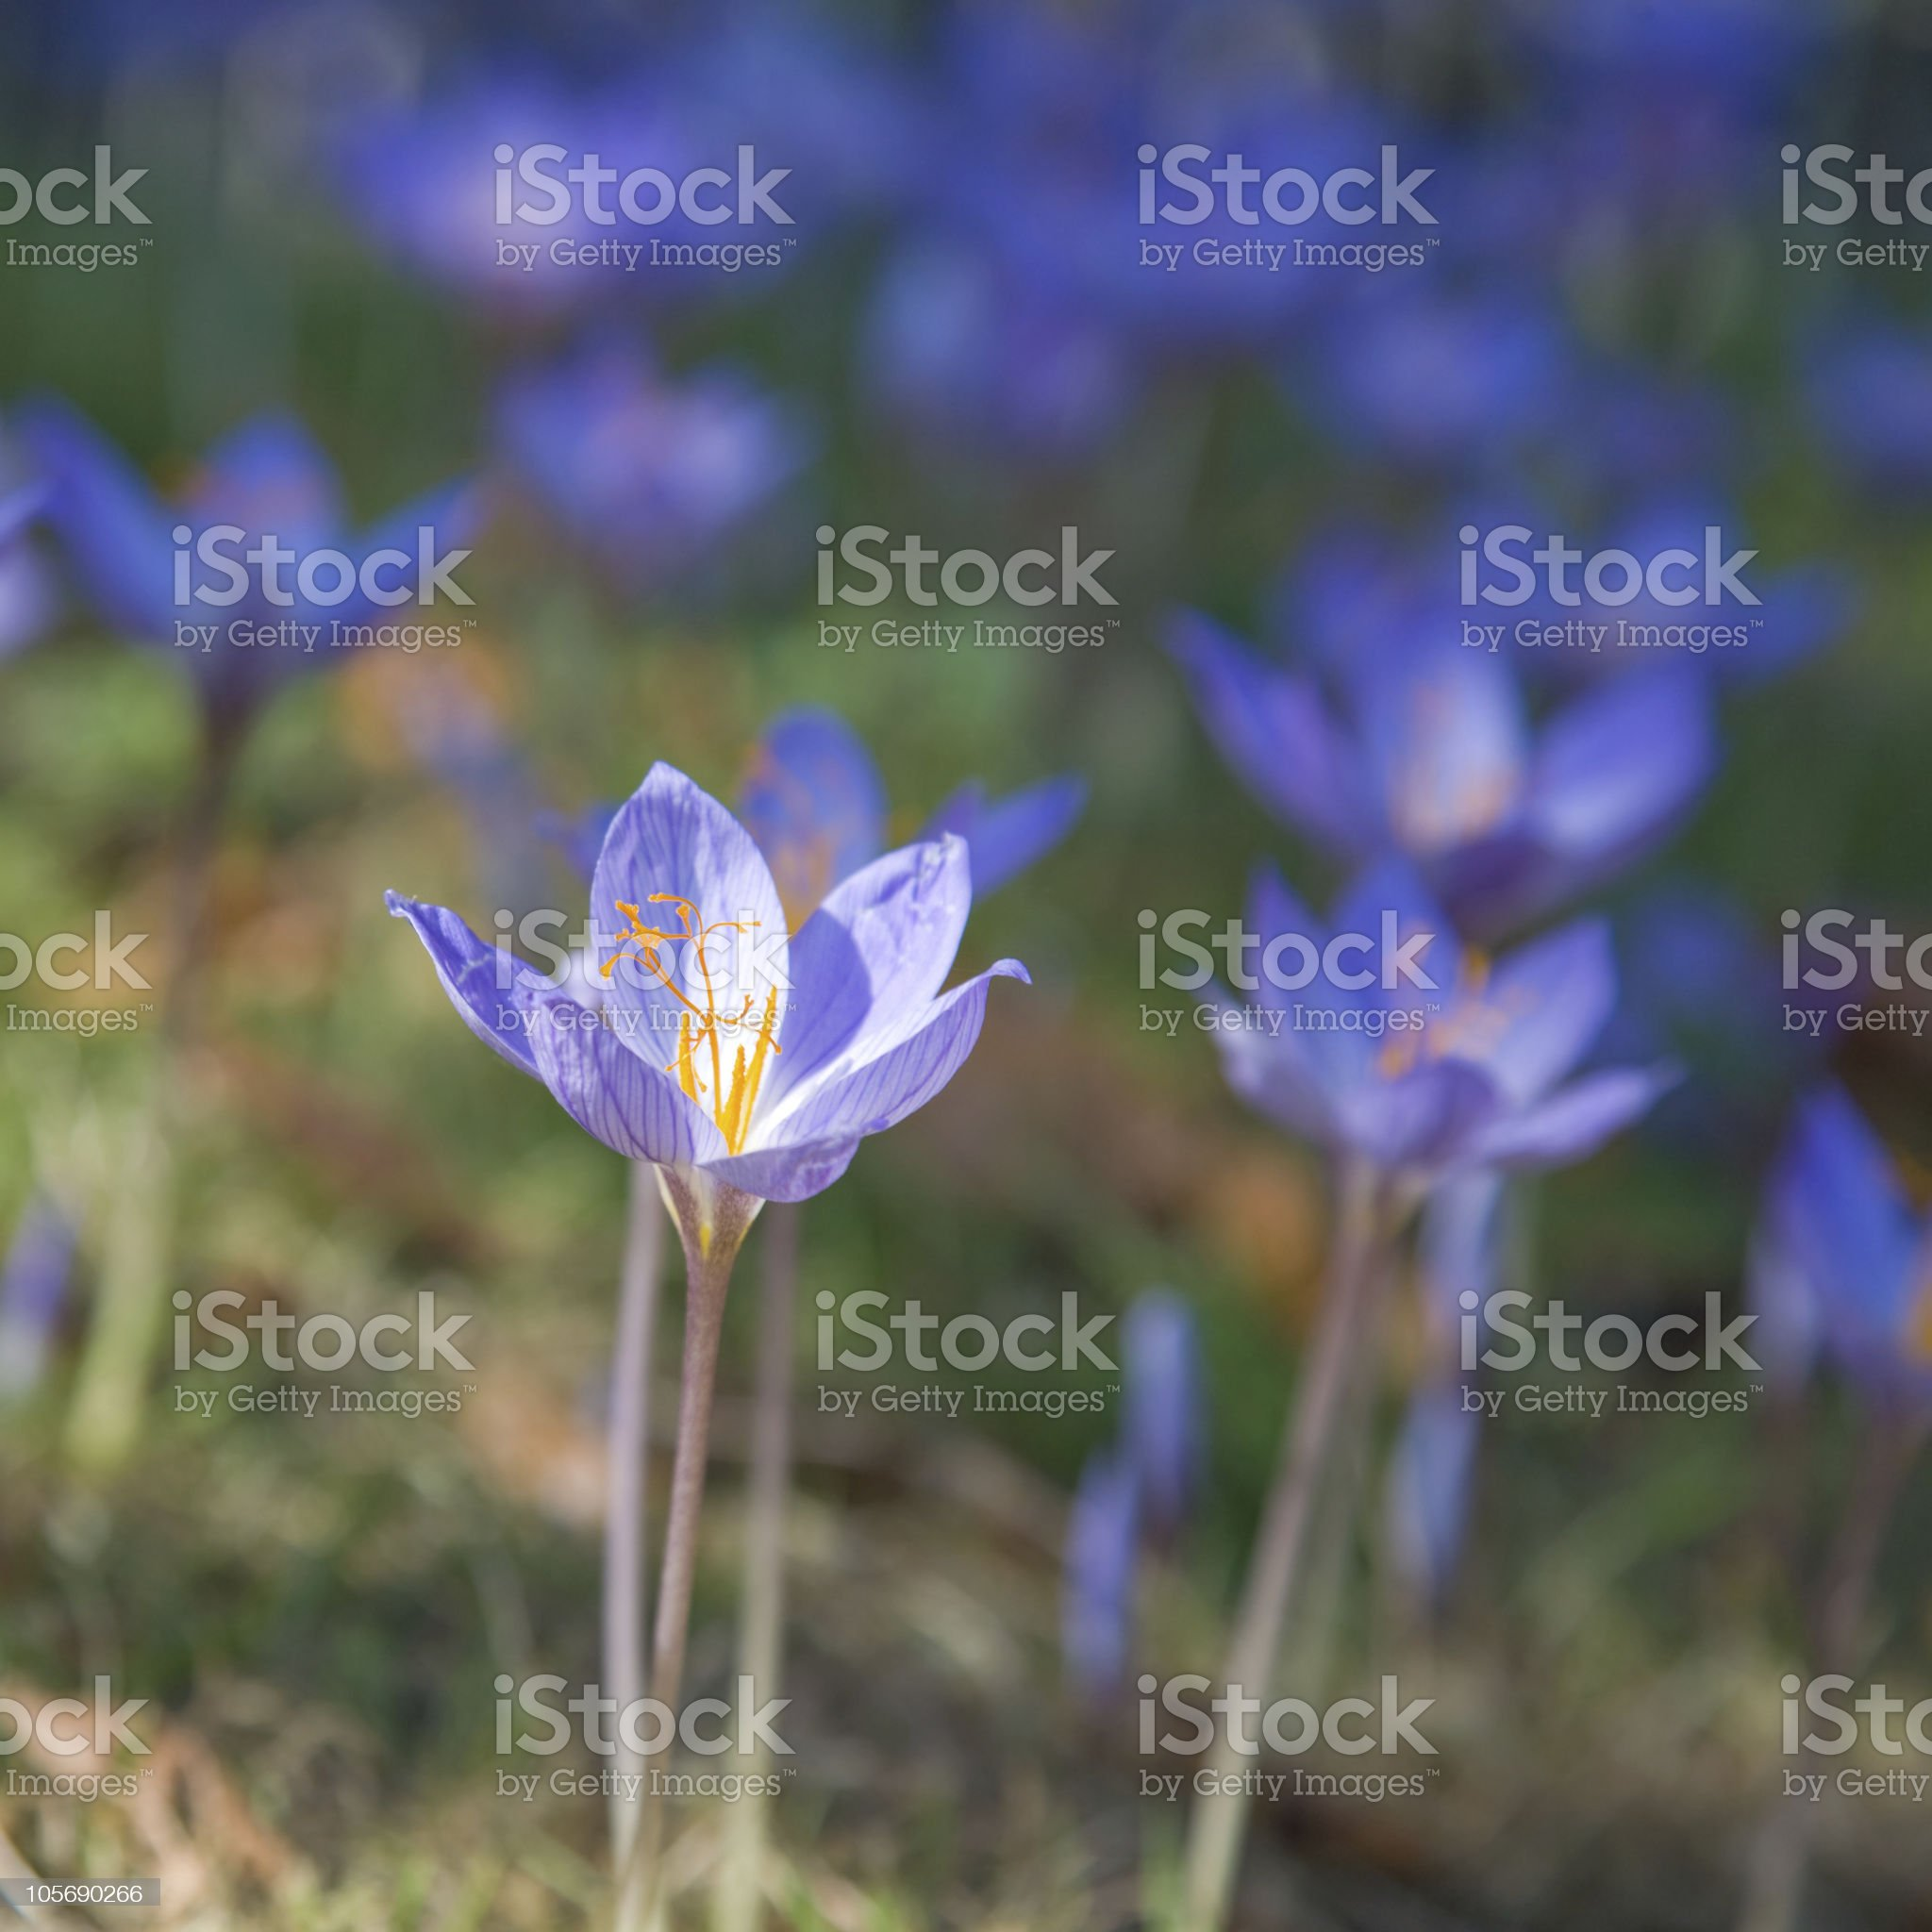 autumn crocus royalty-free stock photo